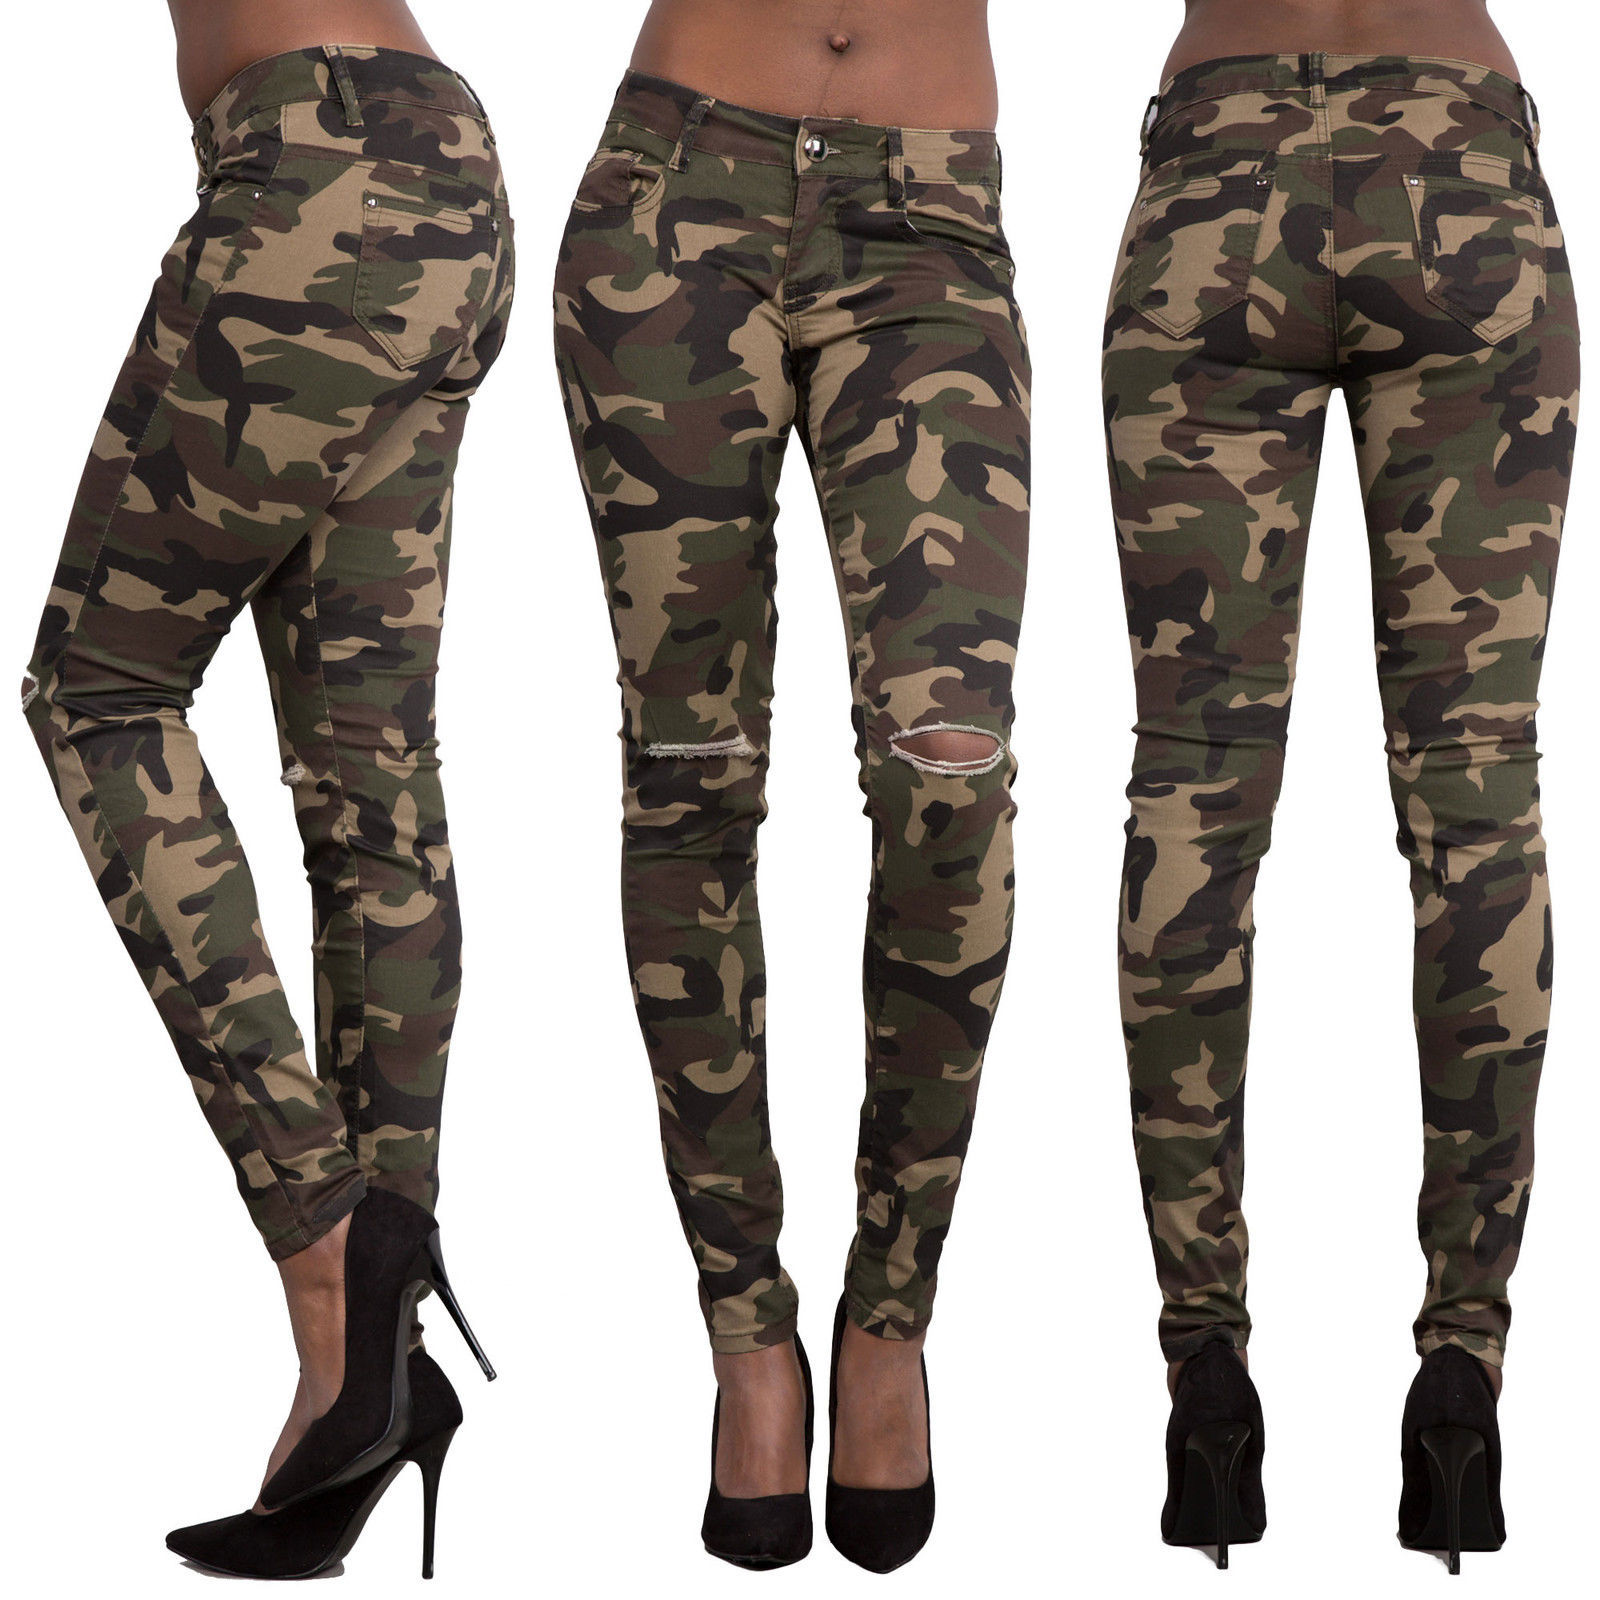 f15acff9c6 Woman pants casual slim sexy camouflage army green girls fashion military  pencil trousers with hole and pockets